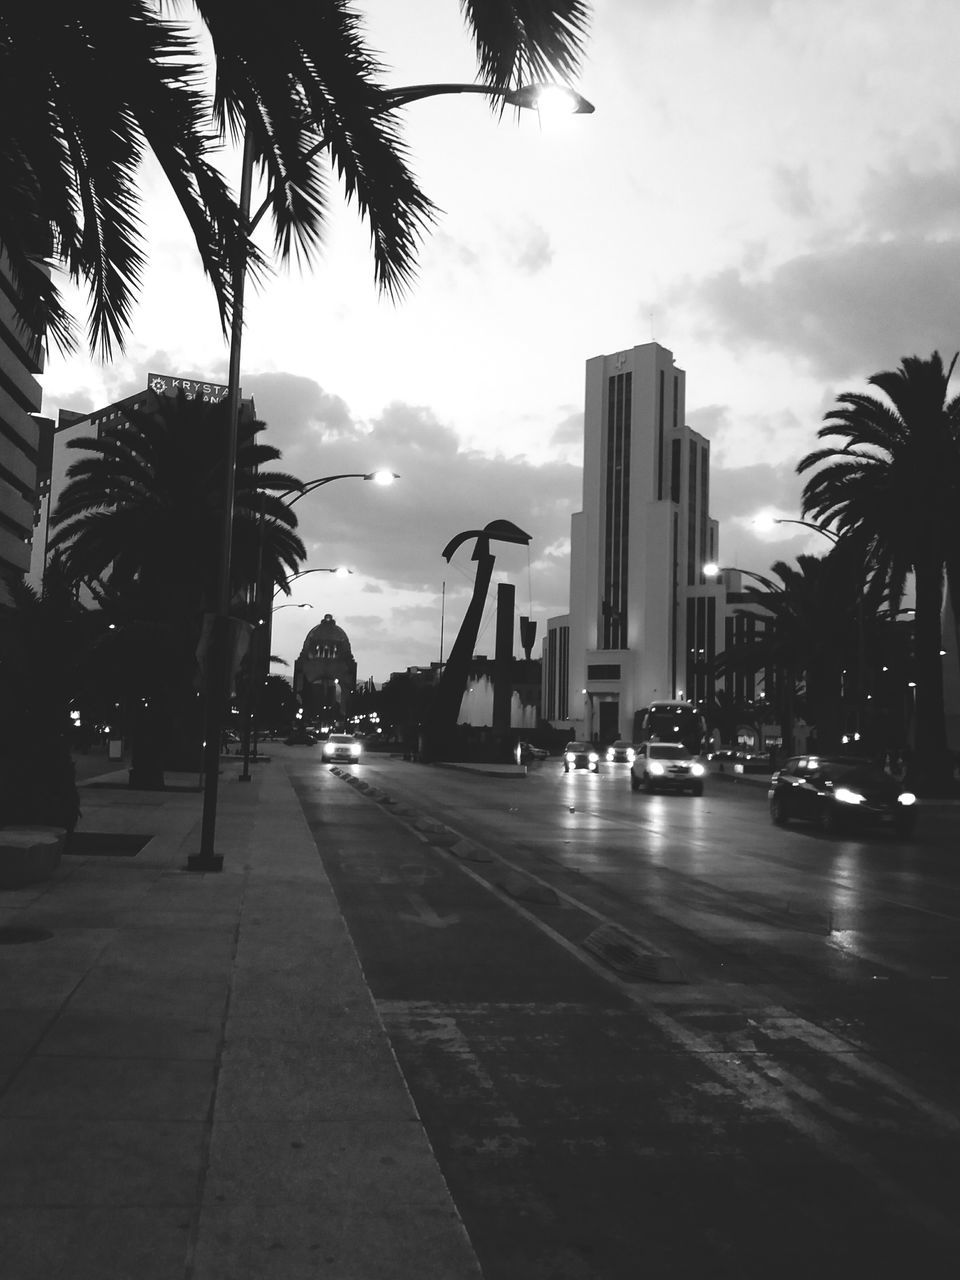 palm tree, tree, built structure, sky, architecture, building exterior, city, outdoors, cloud - sky, travel destinations, road, growth, no people, illuminated, modern, day